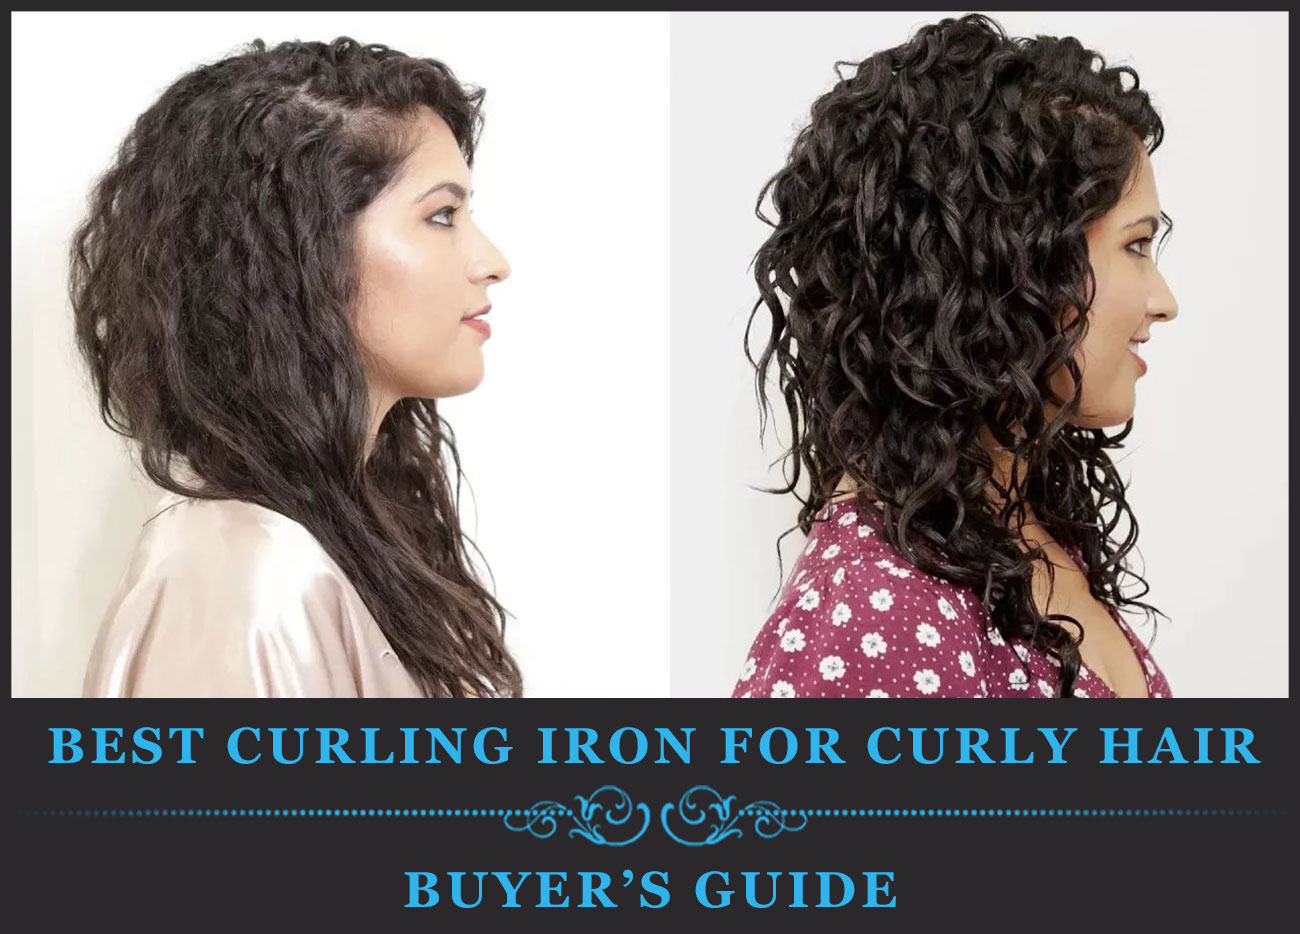 Featured Image of Best Curling Iron for Curly Hair Buyer's Guide and Reviews